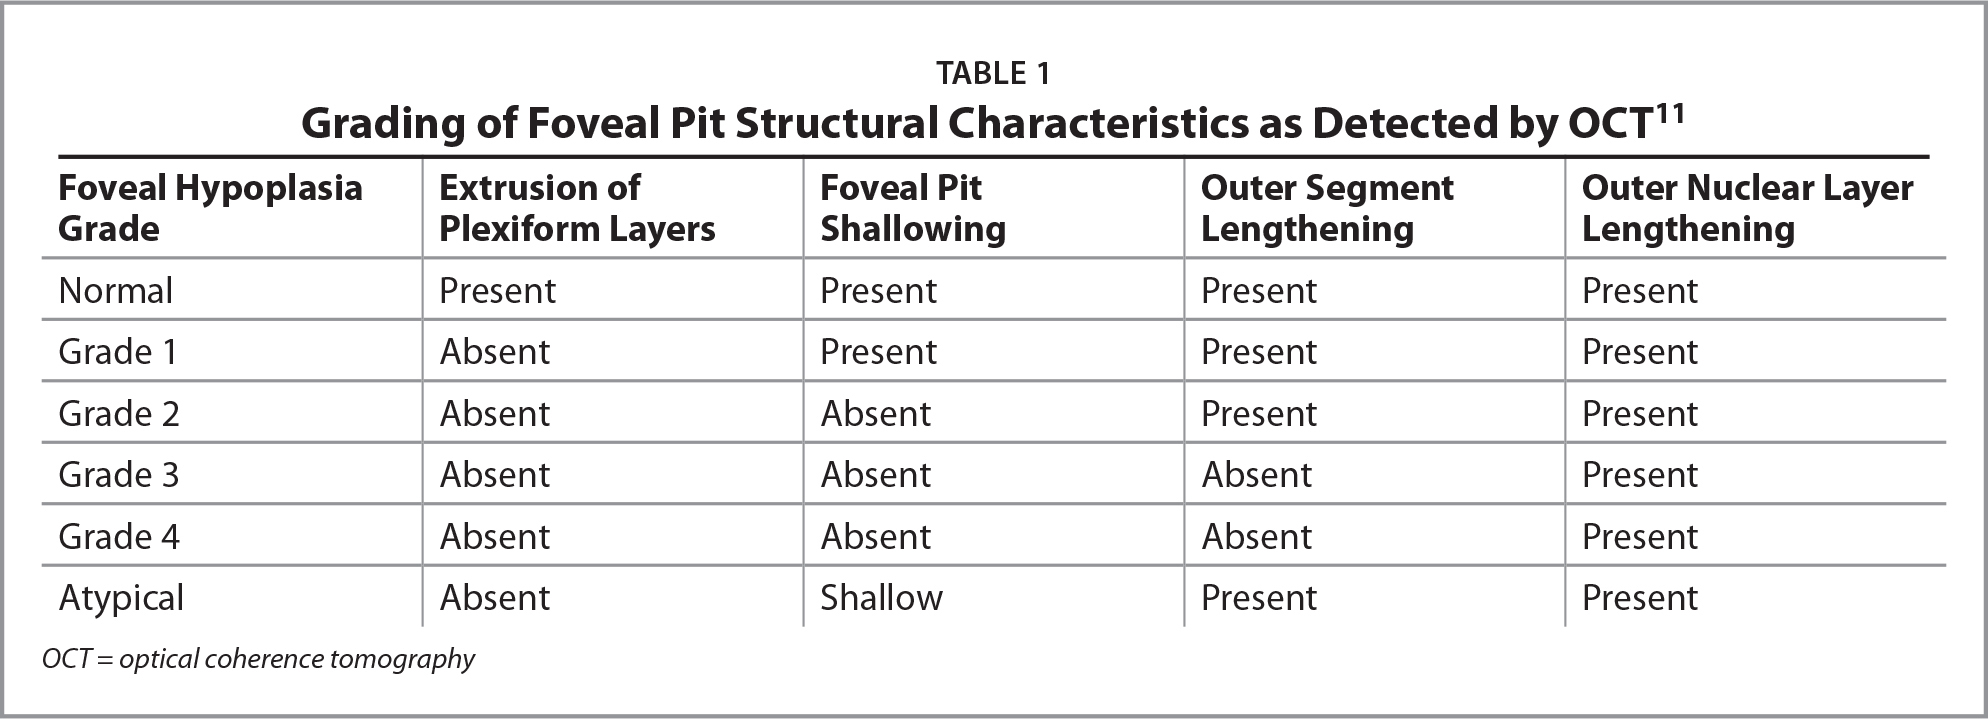 Grading of Foveal Pit Structural Characteristics as Detected by OCT11